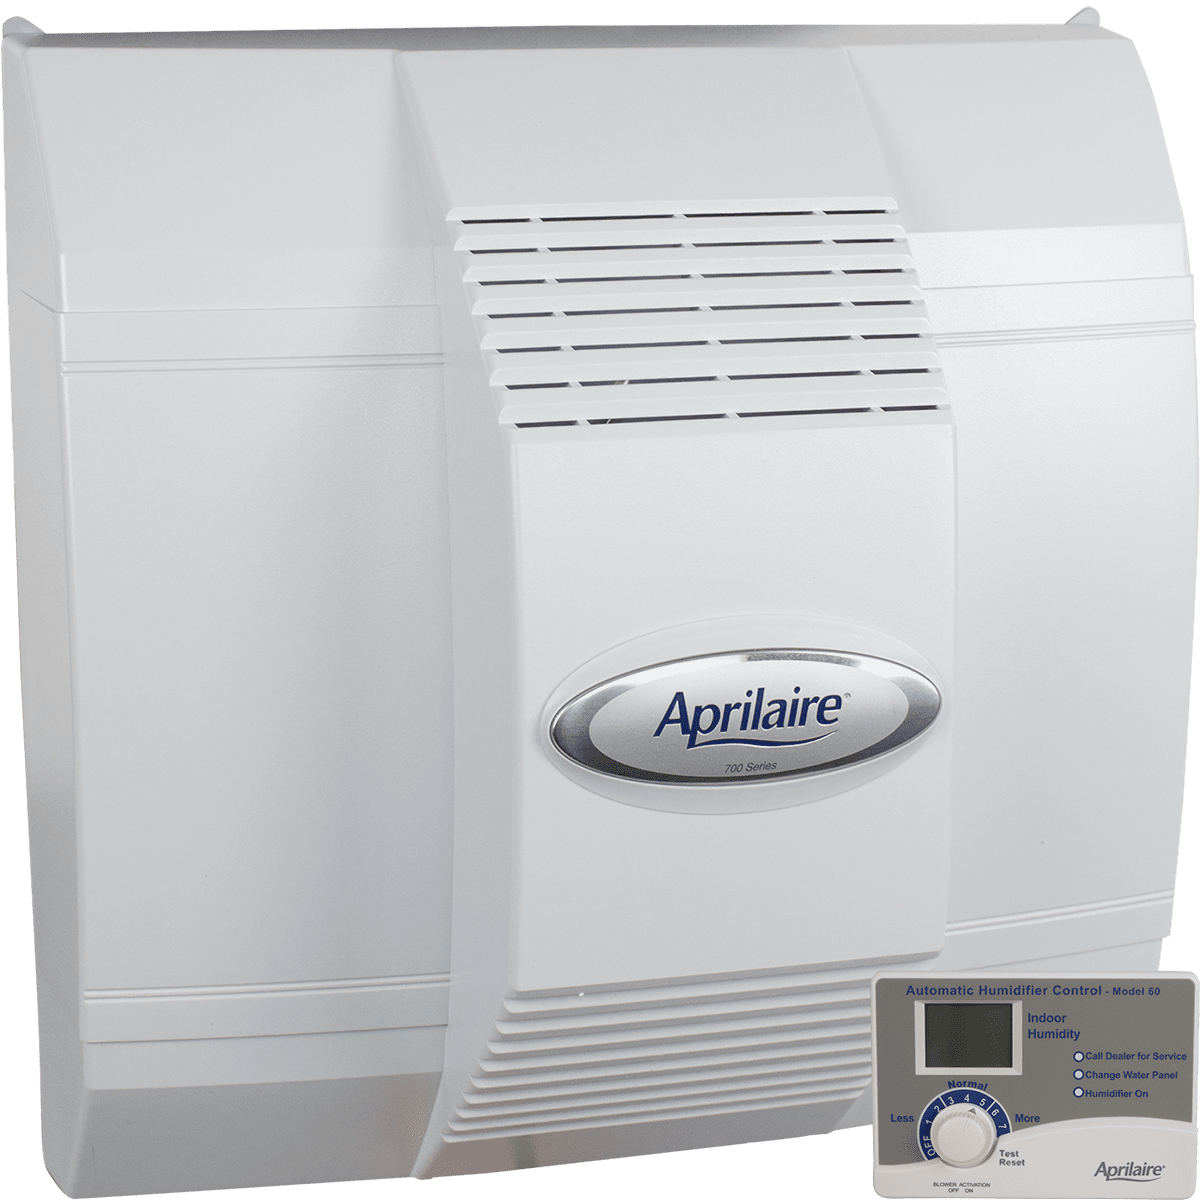 Aprilaire Model 700 Whole House Bypass Humidifiers - automatic control